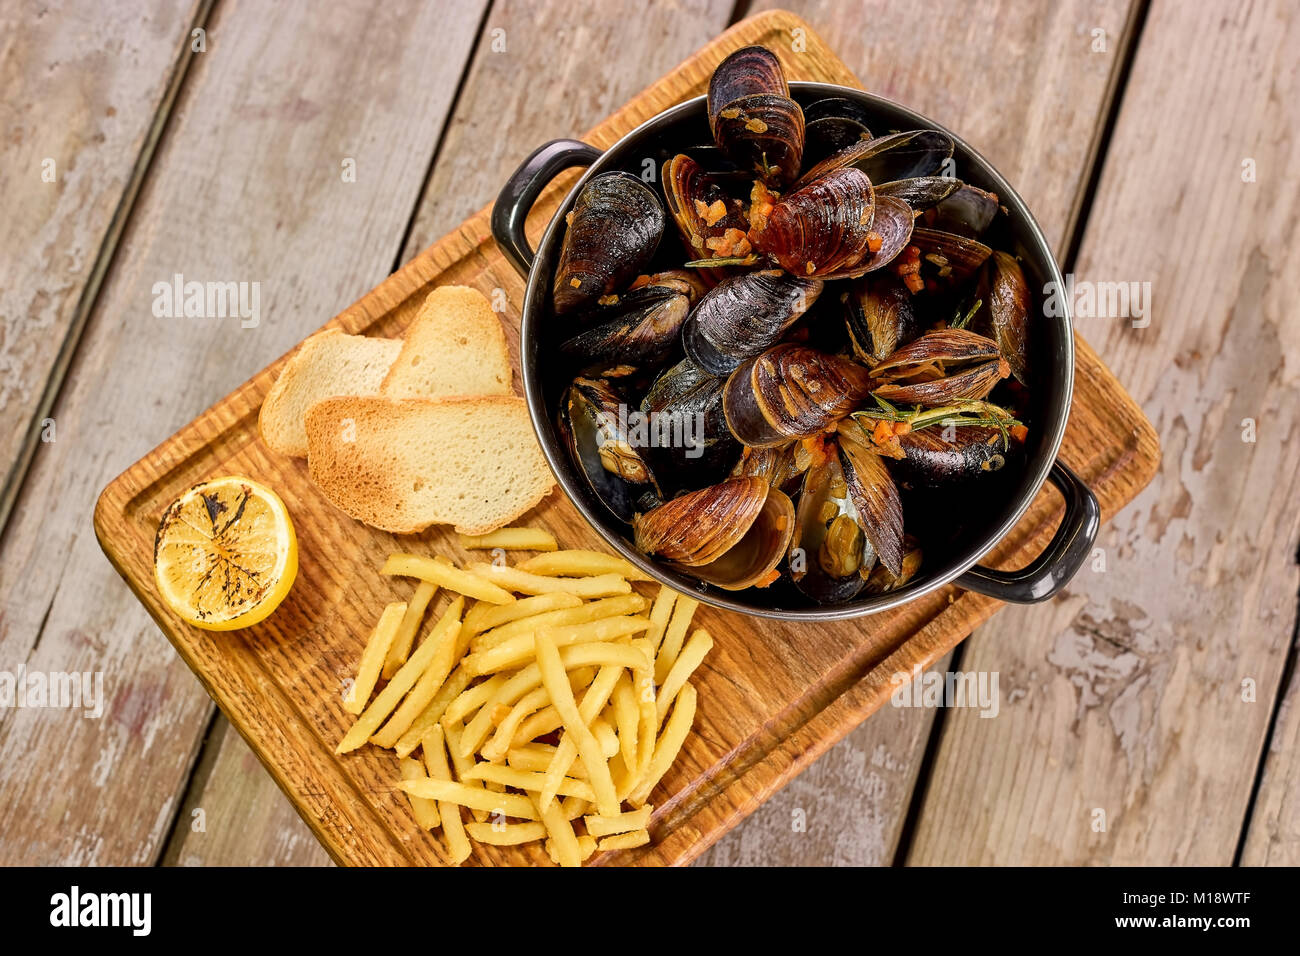 Many mussels in saucepan and side dish. Stock Photo